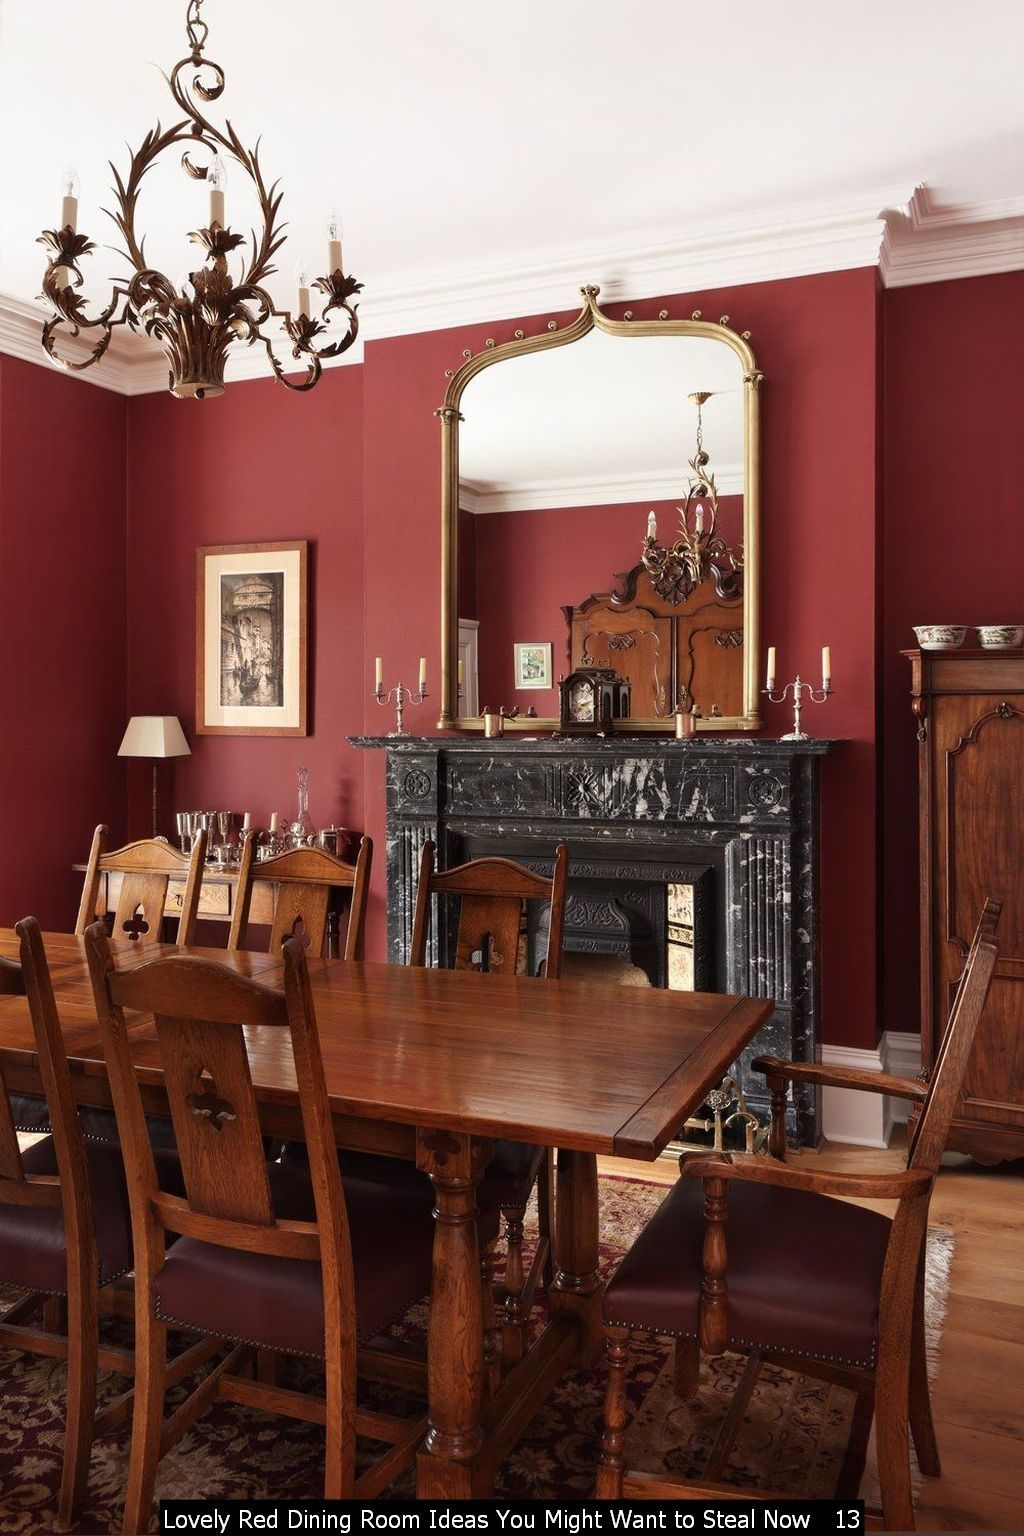 101 Lovely Red Dining Room Ideas You Might Want To Steal Now In 2020 Red Dining Room Dining Room Dining